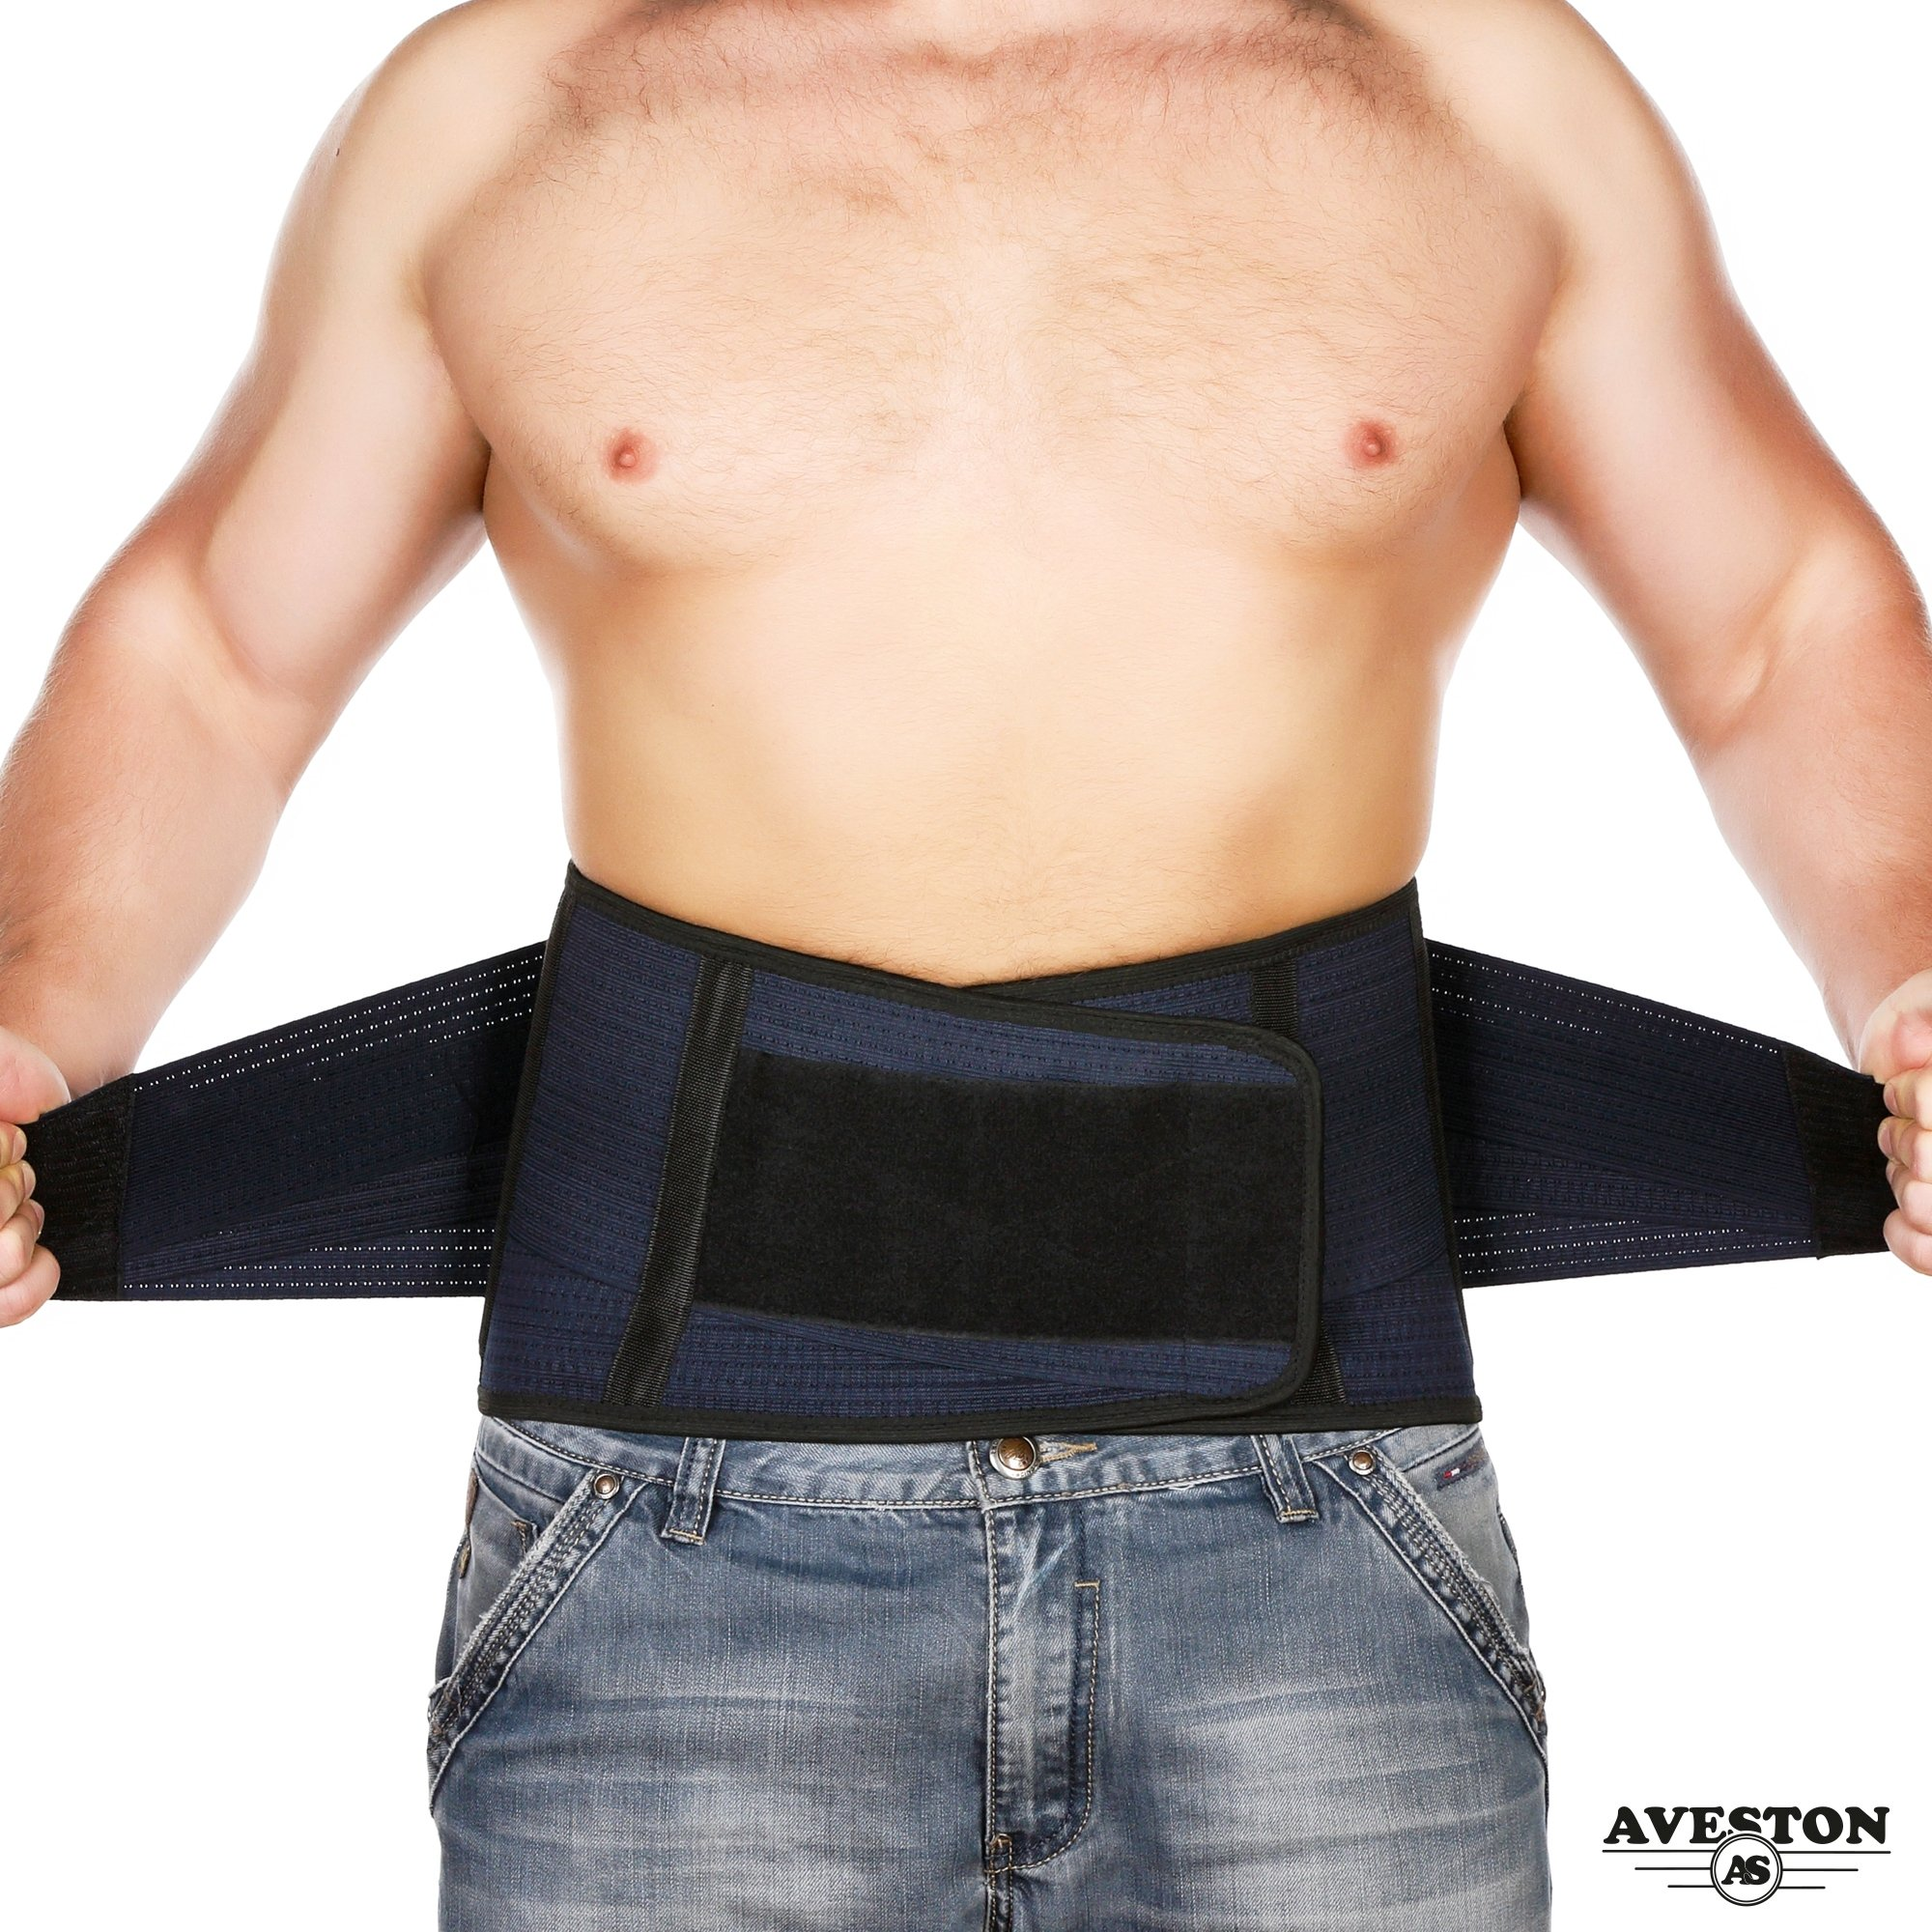 Breathable Back Support and Lumbar Lower Back Brace provides Back Pain Relief - Keep Your Spine Safe and Straight thanks to 6 Plastic ribs and 3 Adjustable Belt - Large size